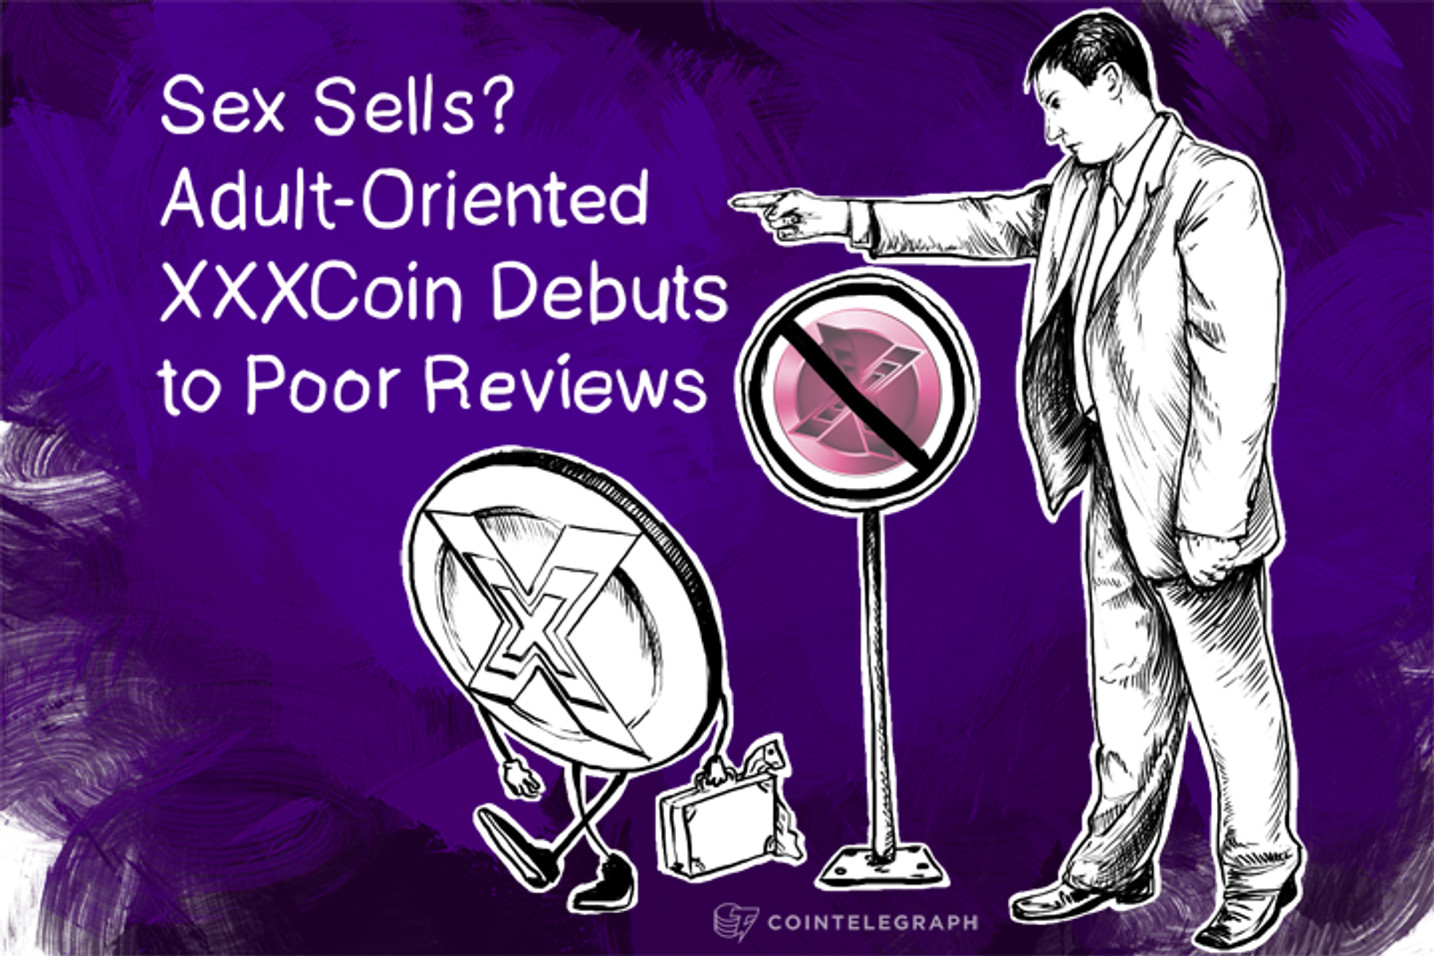 Sex Sells? Adult-Oriented XXXCoin Debuts to Poor Reviews